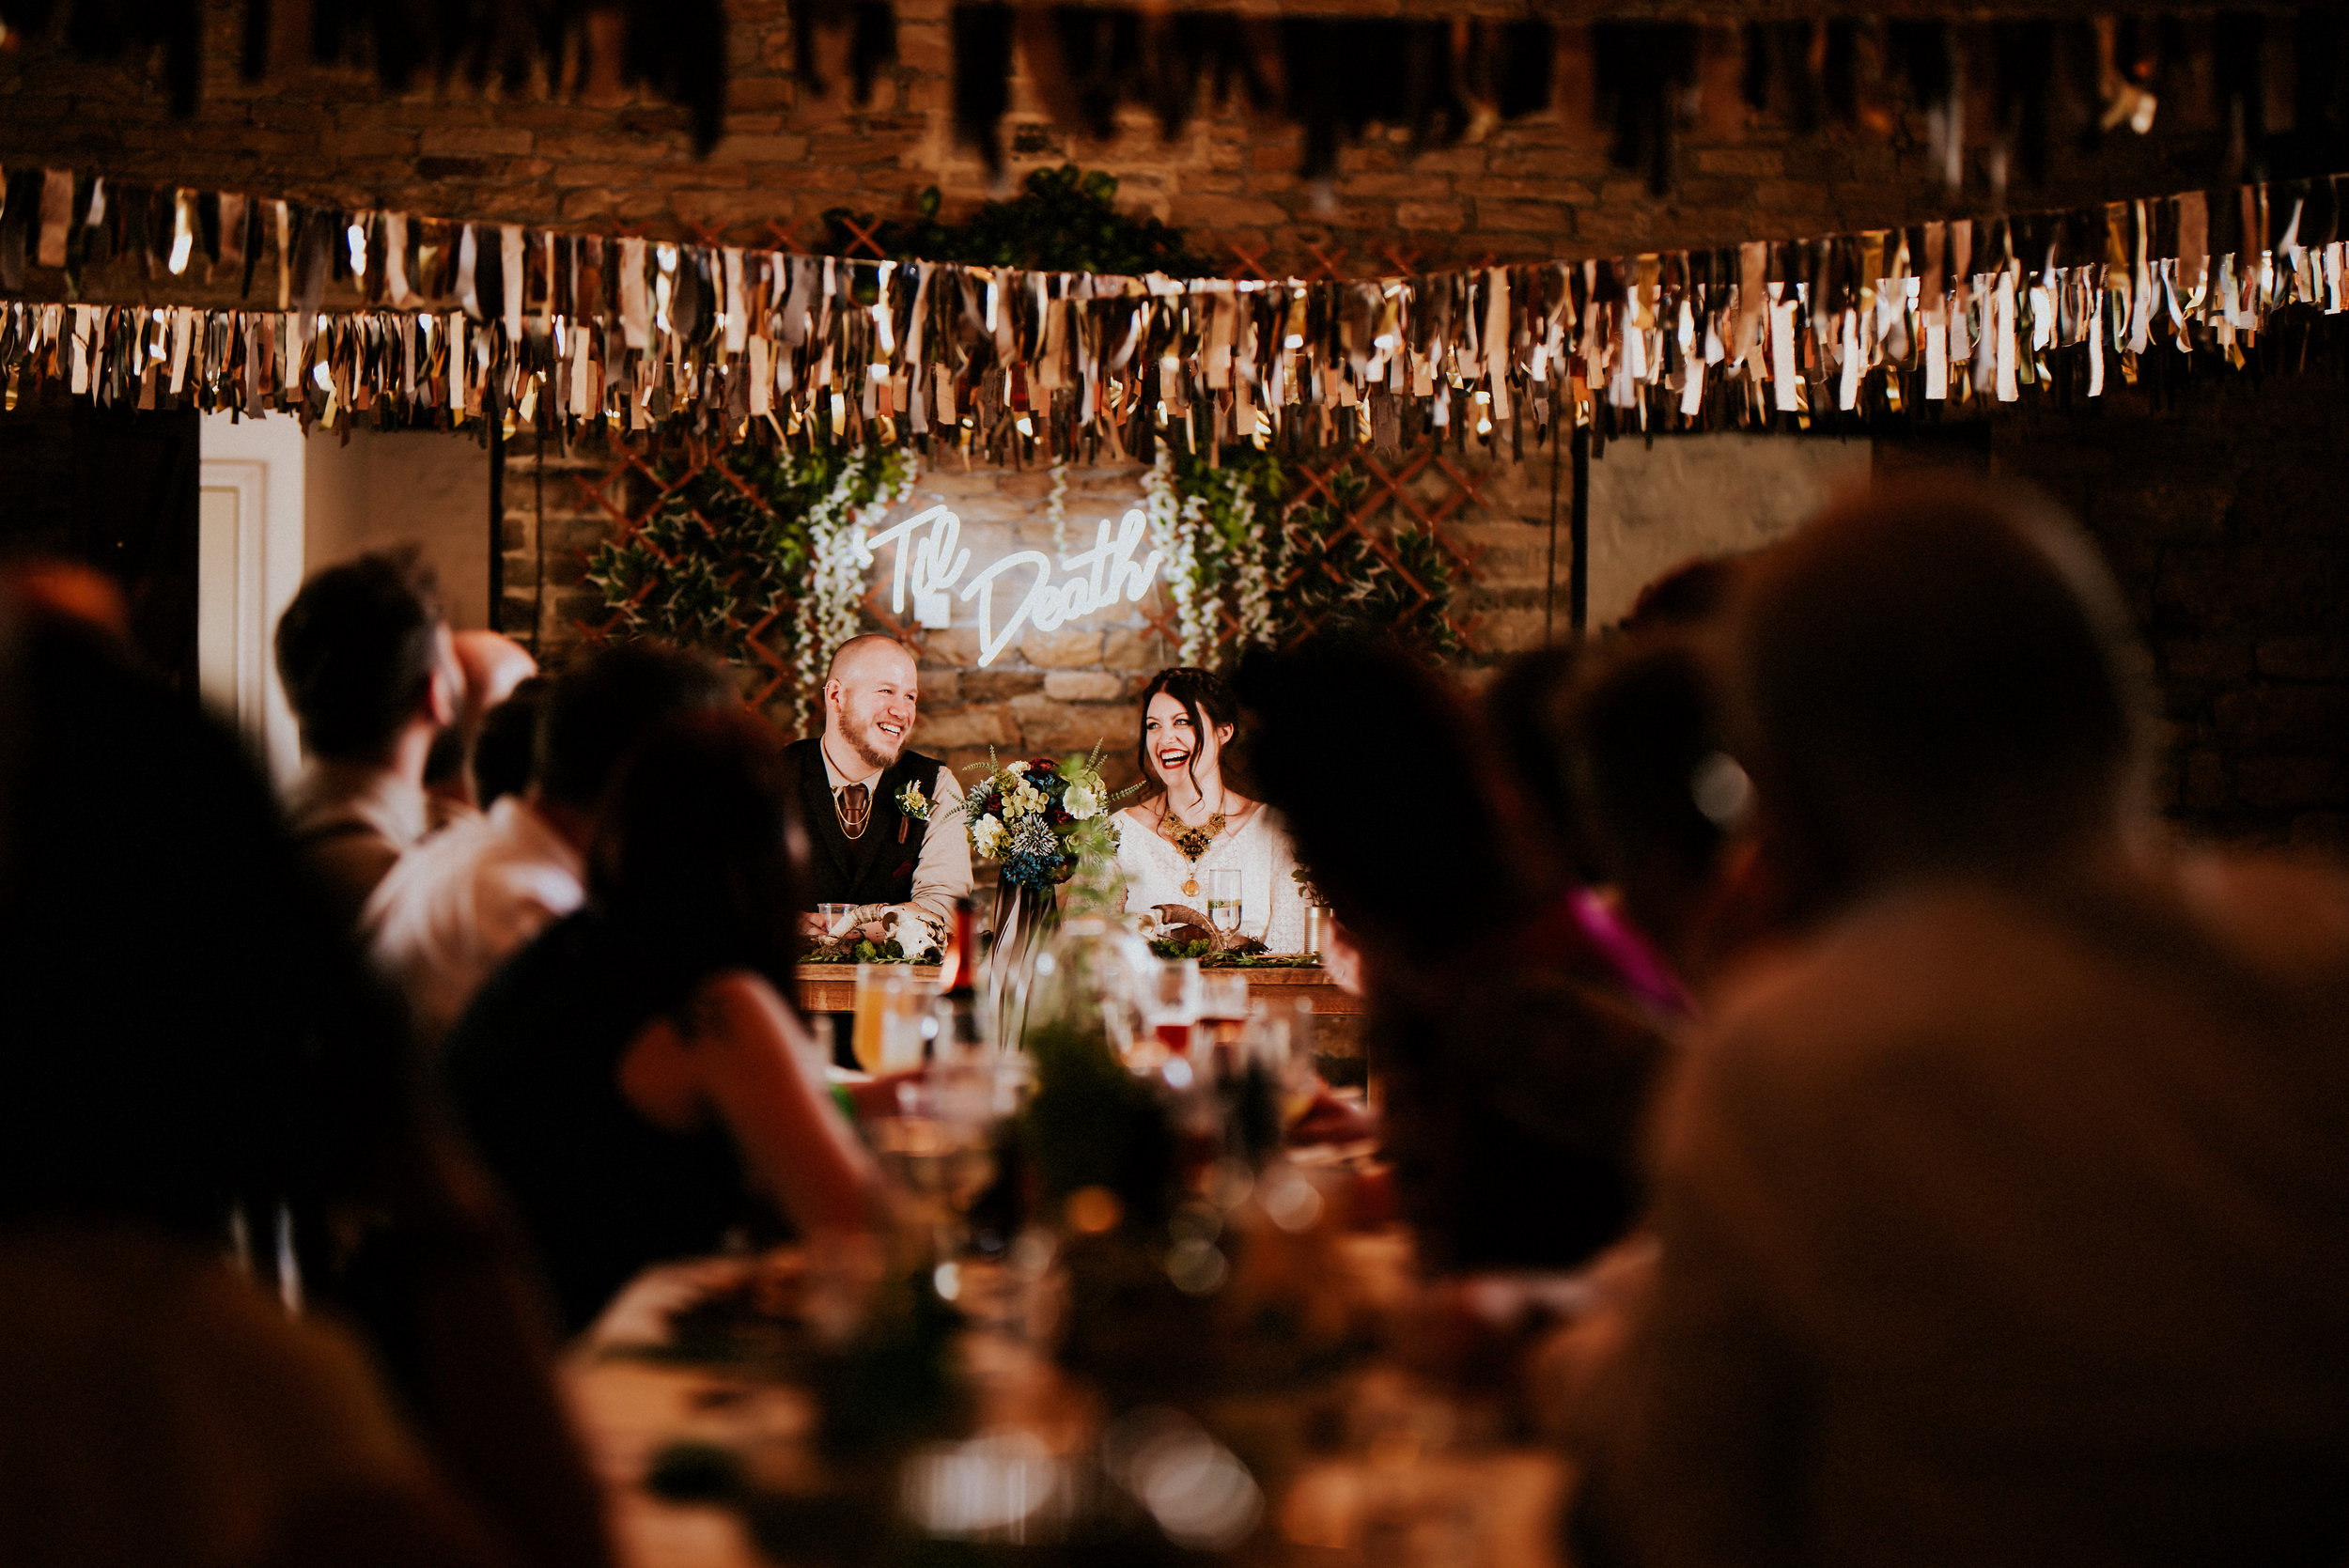 Handmade decorations, Birds of Prey, A beautiful lace dress from Rolling in Roses. The awe inspiring grandeur of Oakwell Hall in Birstall is the ideal venue for this neon lit rock n roll Leeds wedding